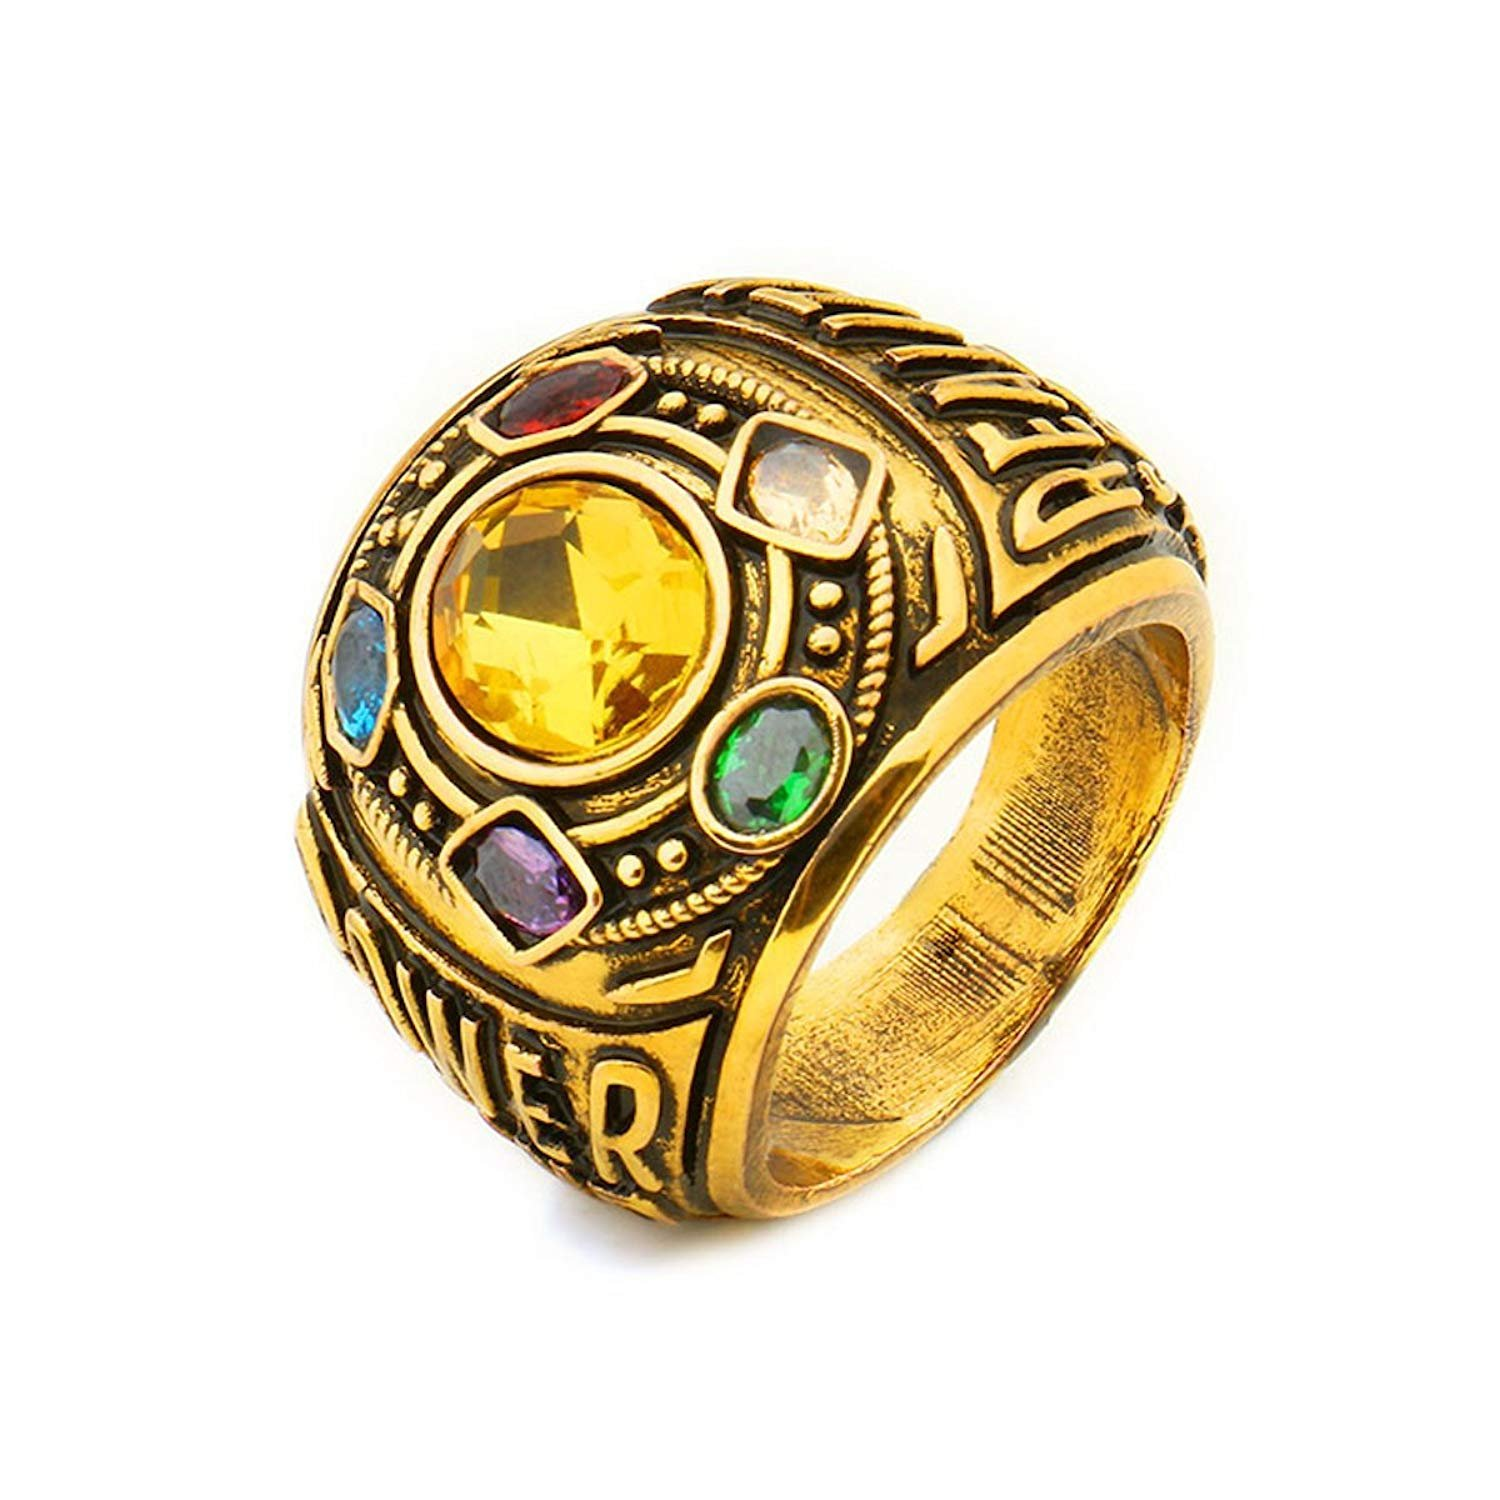 Joyfunny Thanos Power Ring Deluxe Infinity Cosplay Golden Ring with Crystals Costume Prop A-11